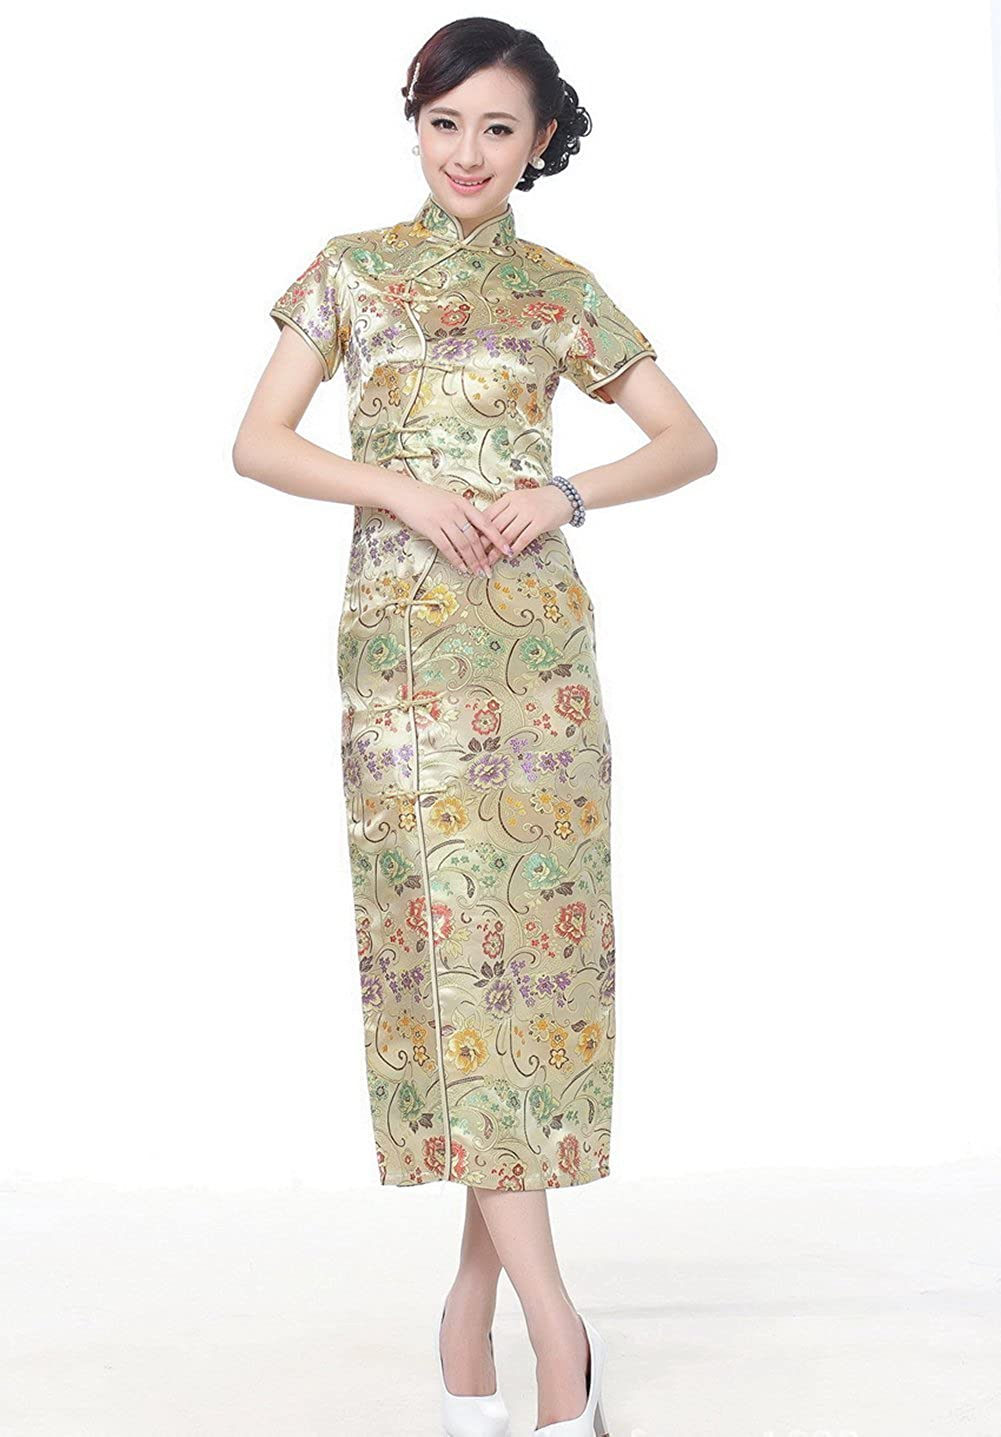 99df57d3c Amazon.com: AvaCostume Women's Chinese Silk Floral Qipao Button Long  Cocktail Dress: Clothing